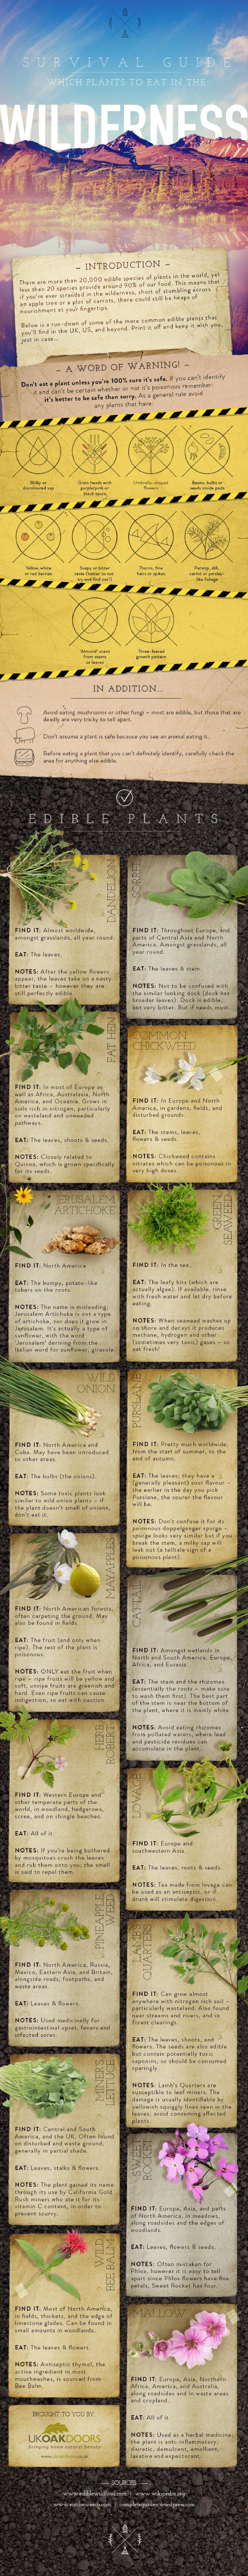 Survival Guide Which Plants to Eat in the Wilderness #infographic